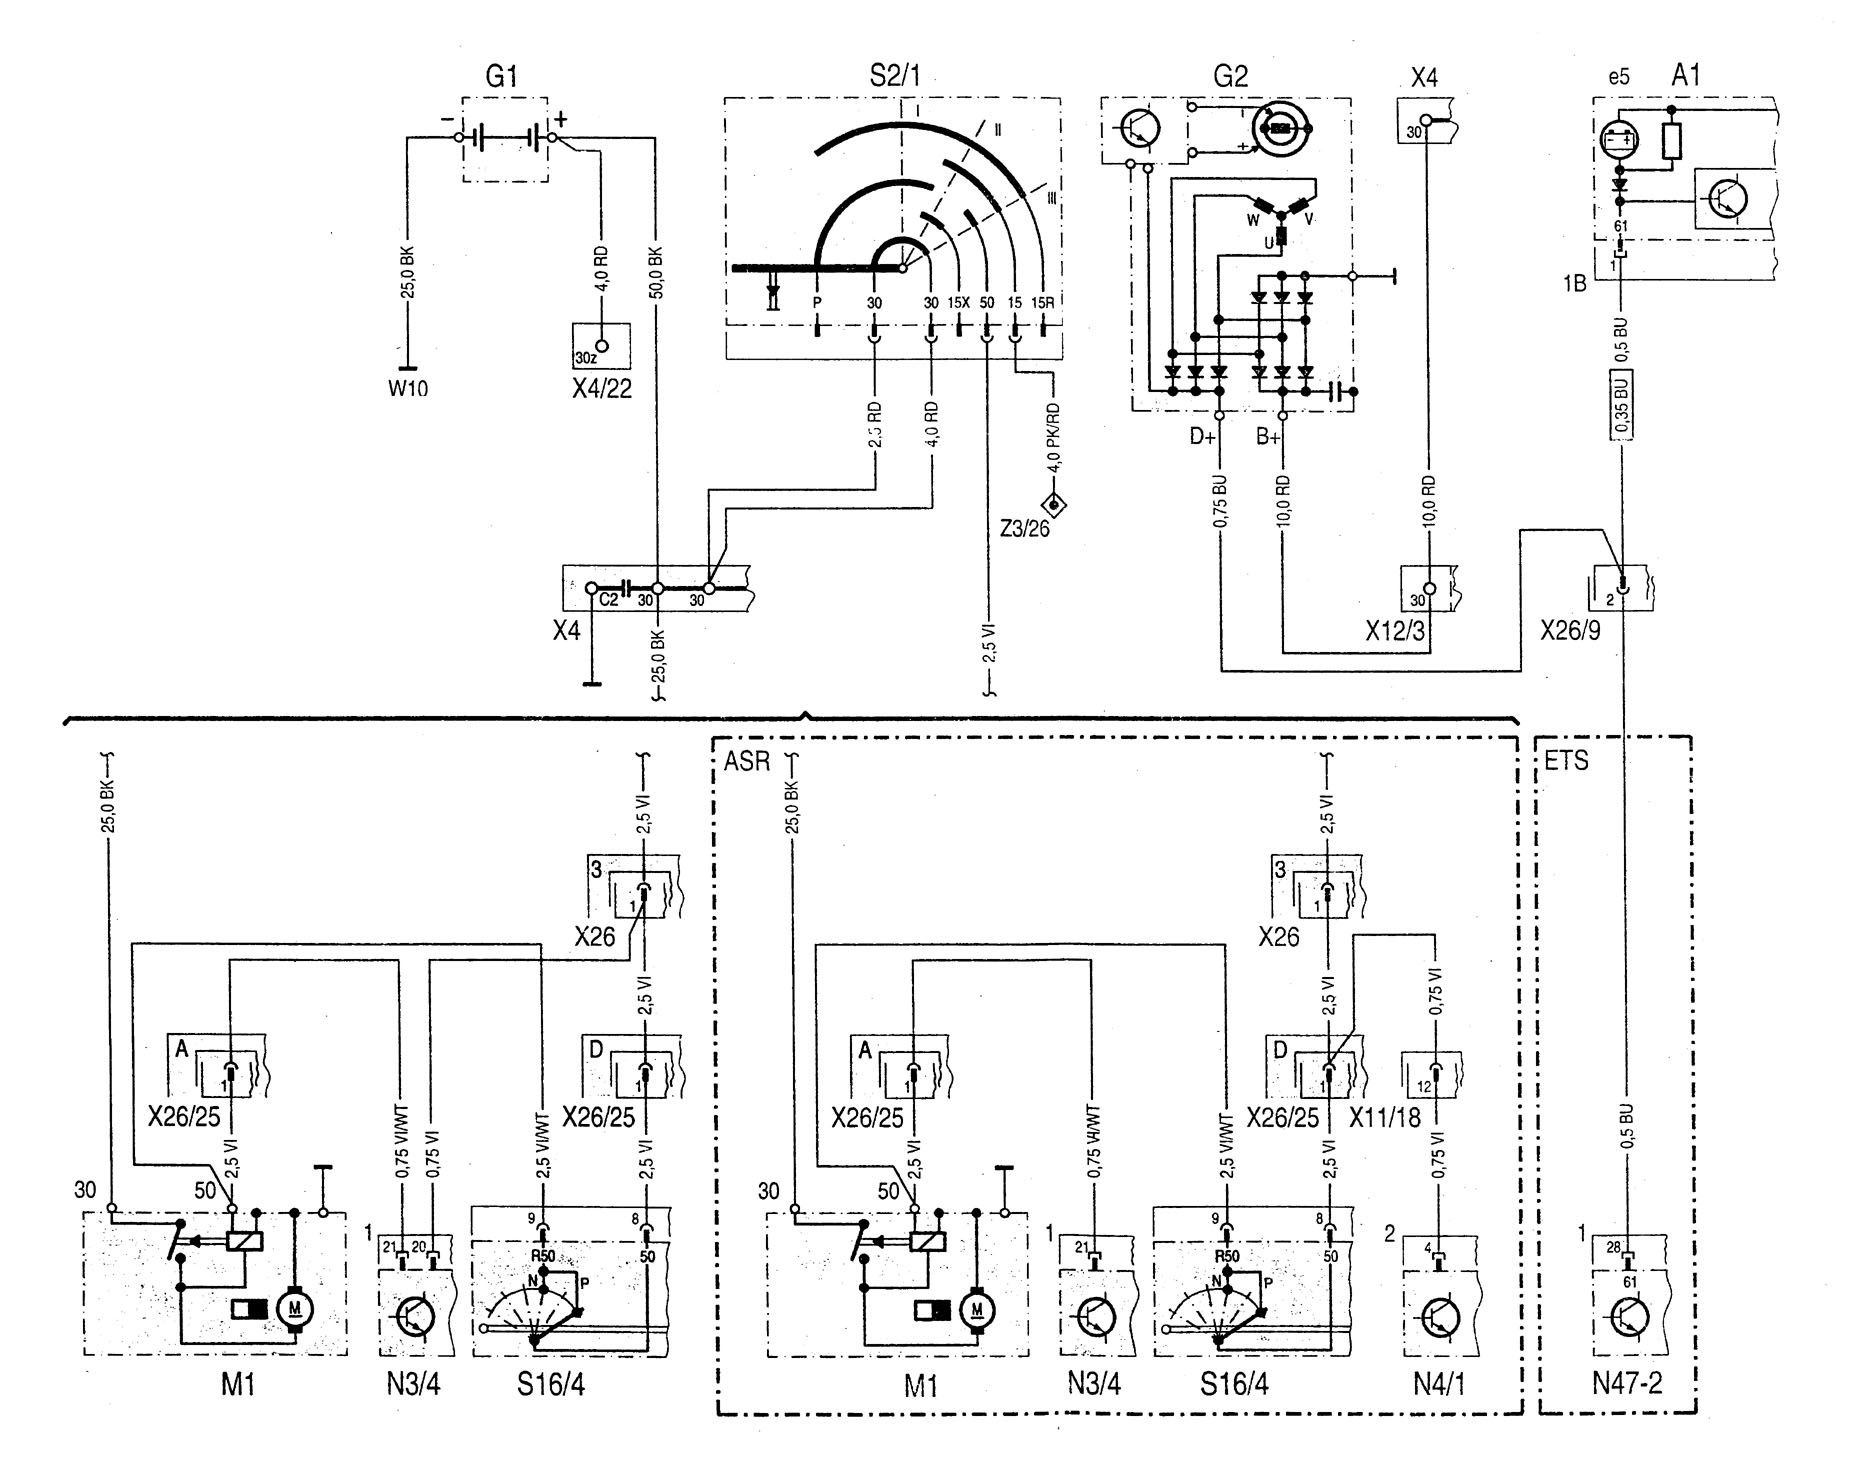 [SCHEMATICS_49CH]  Mercedes Benz Wiring Diagram Diagram Base Website Wiring Diagram -  ONLINESEQUENCEDIAGRAM.RECHT-DD.DE | 1999 Mercedes Benz Wiring Diagrams |  | Diagram Base Website Full Edition